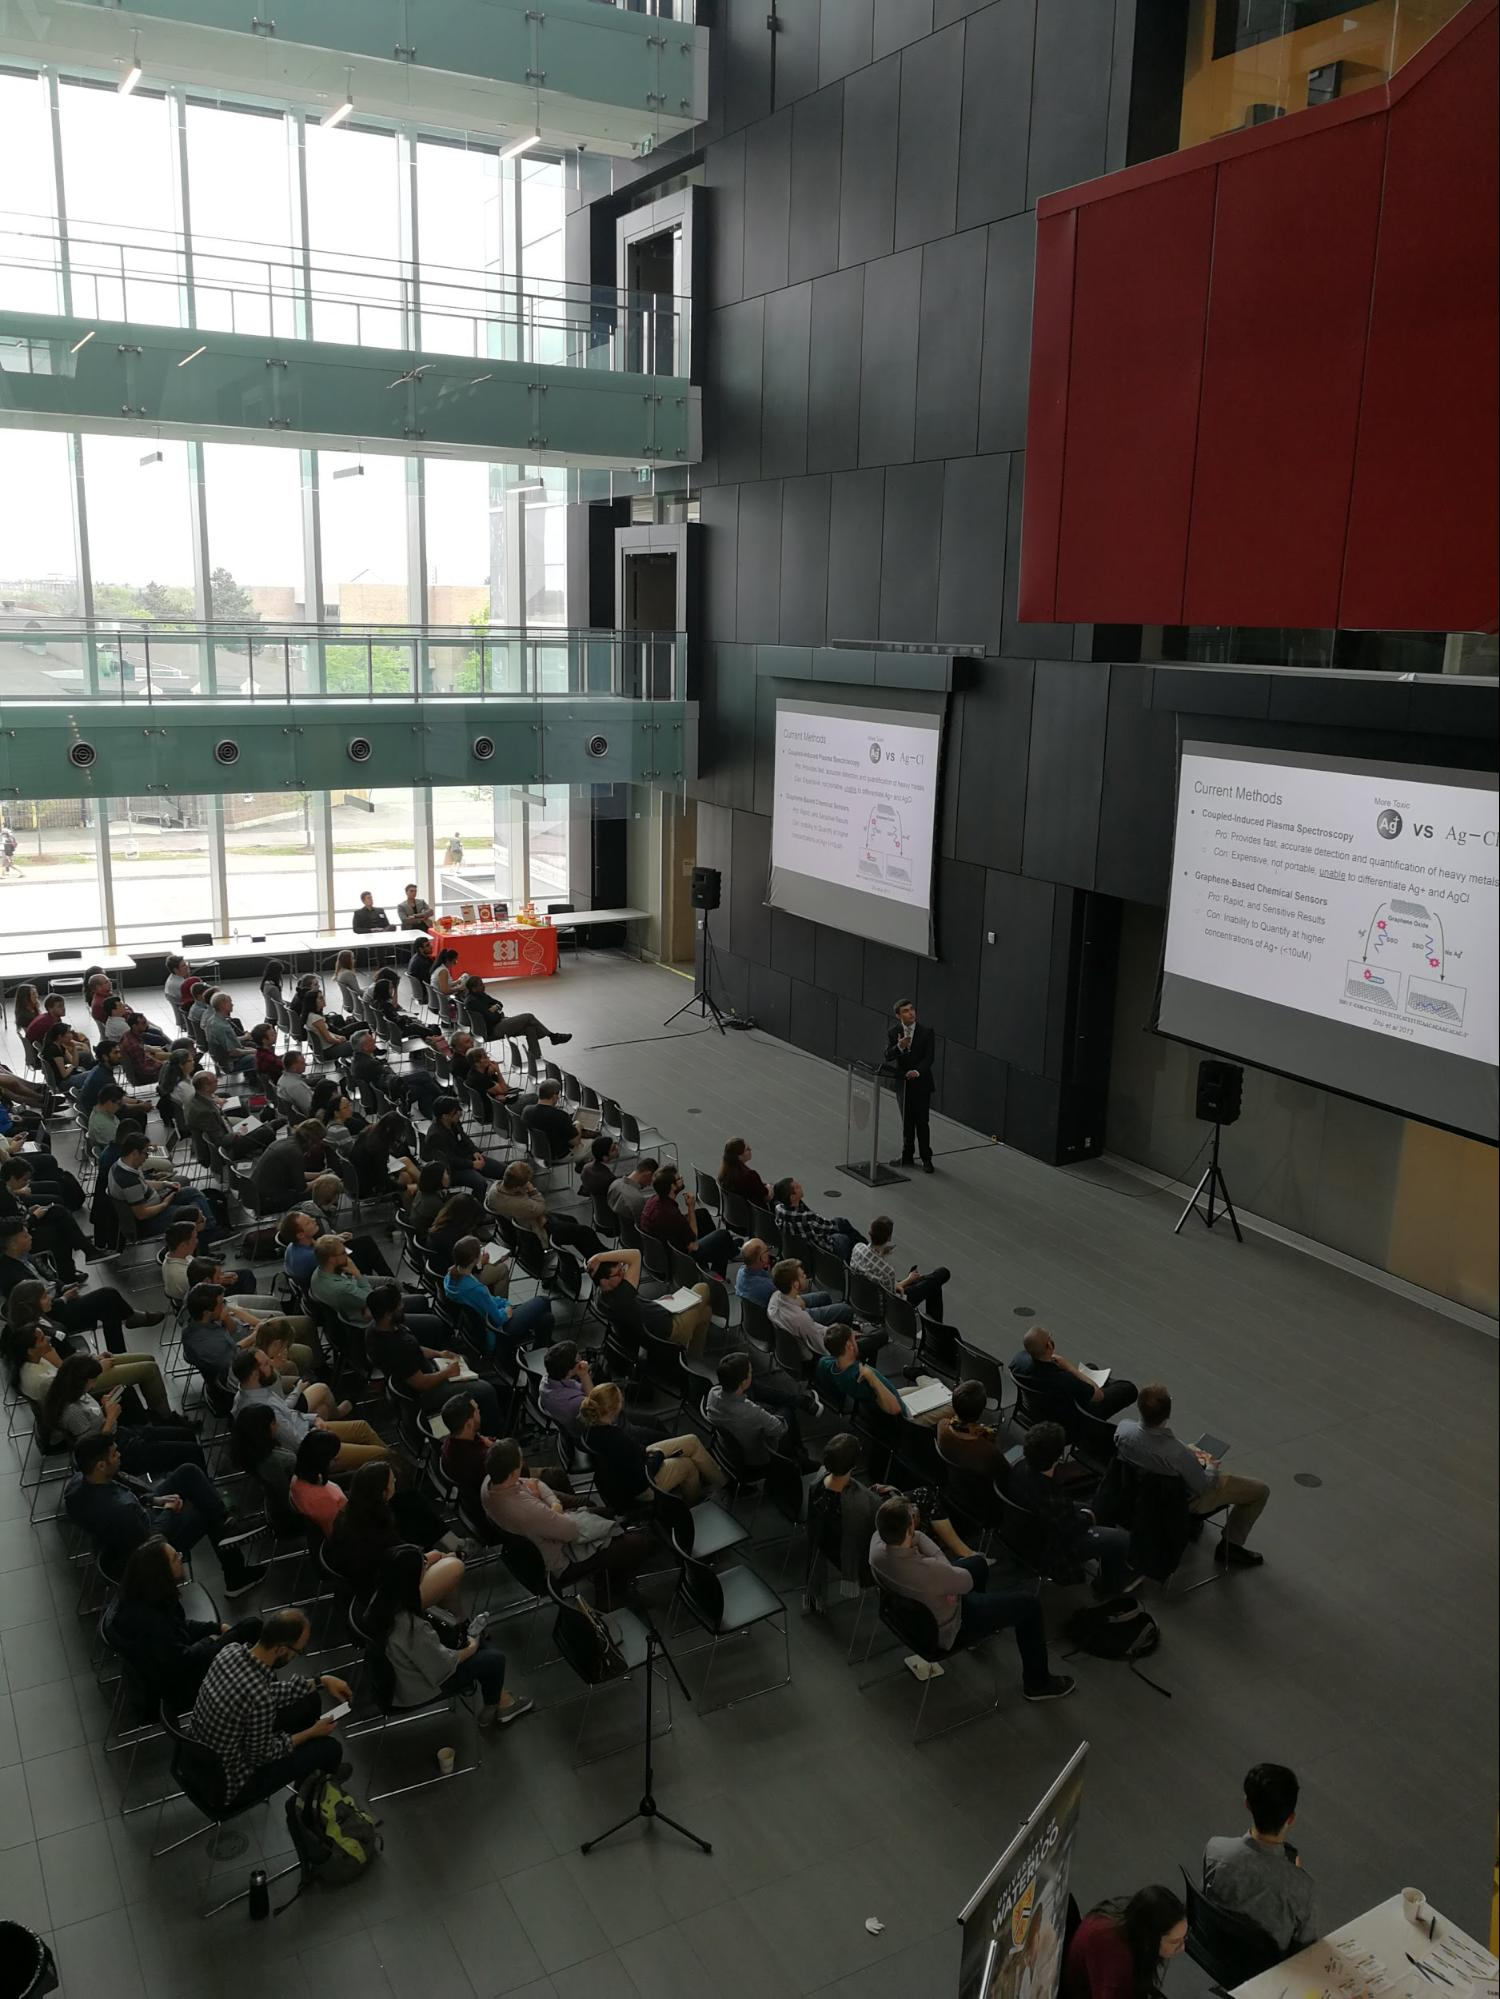 Adam Radek Martinez delivering his (award-winning) research talk at SynBio 4.0. Photo courtesy of    @Synbiosymp    and    WCMR  .